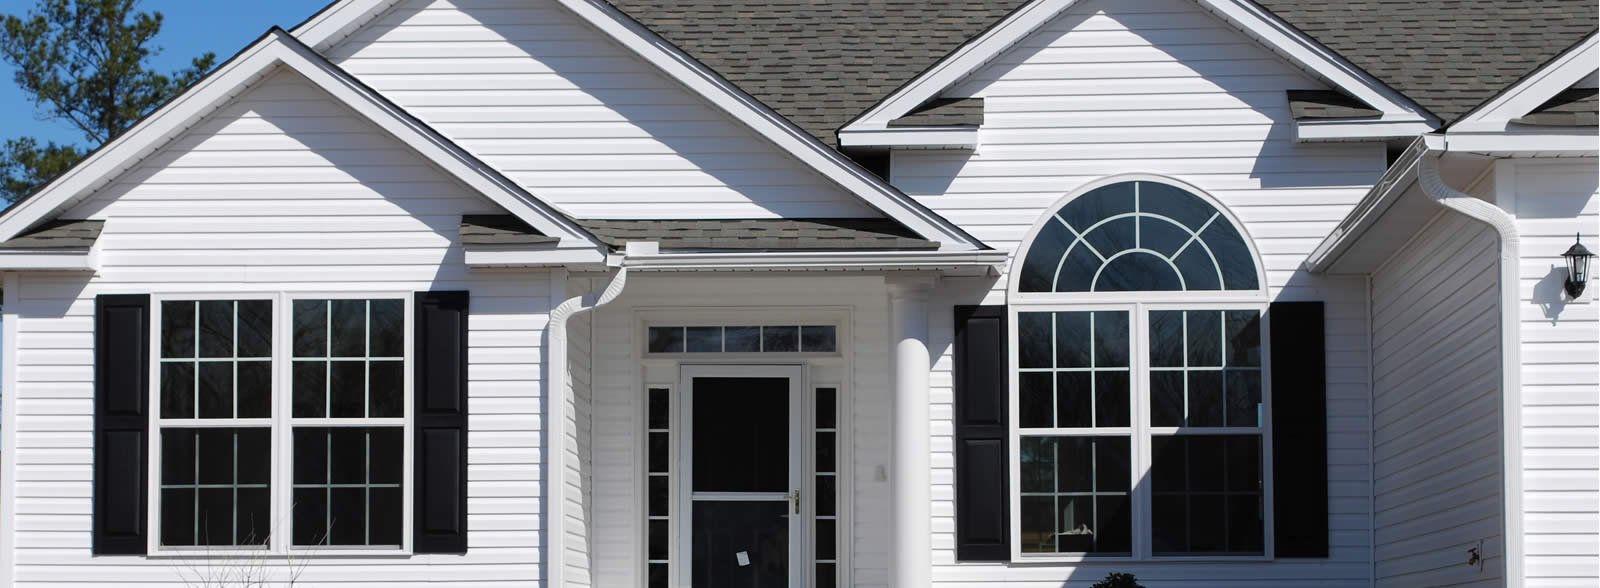 Vinyl Siding Knoxville Roofing Repair Amp Exterior